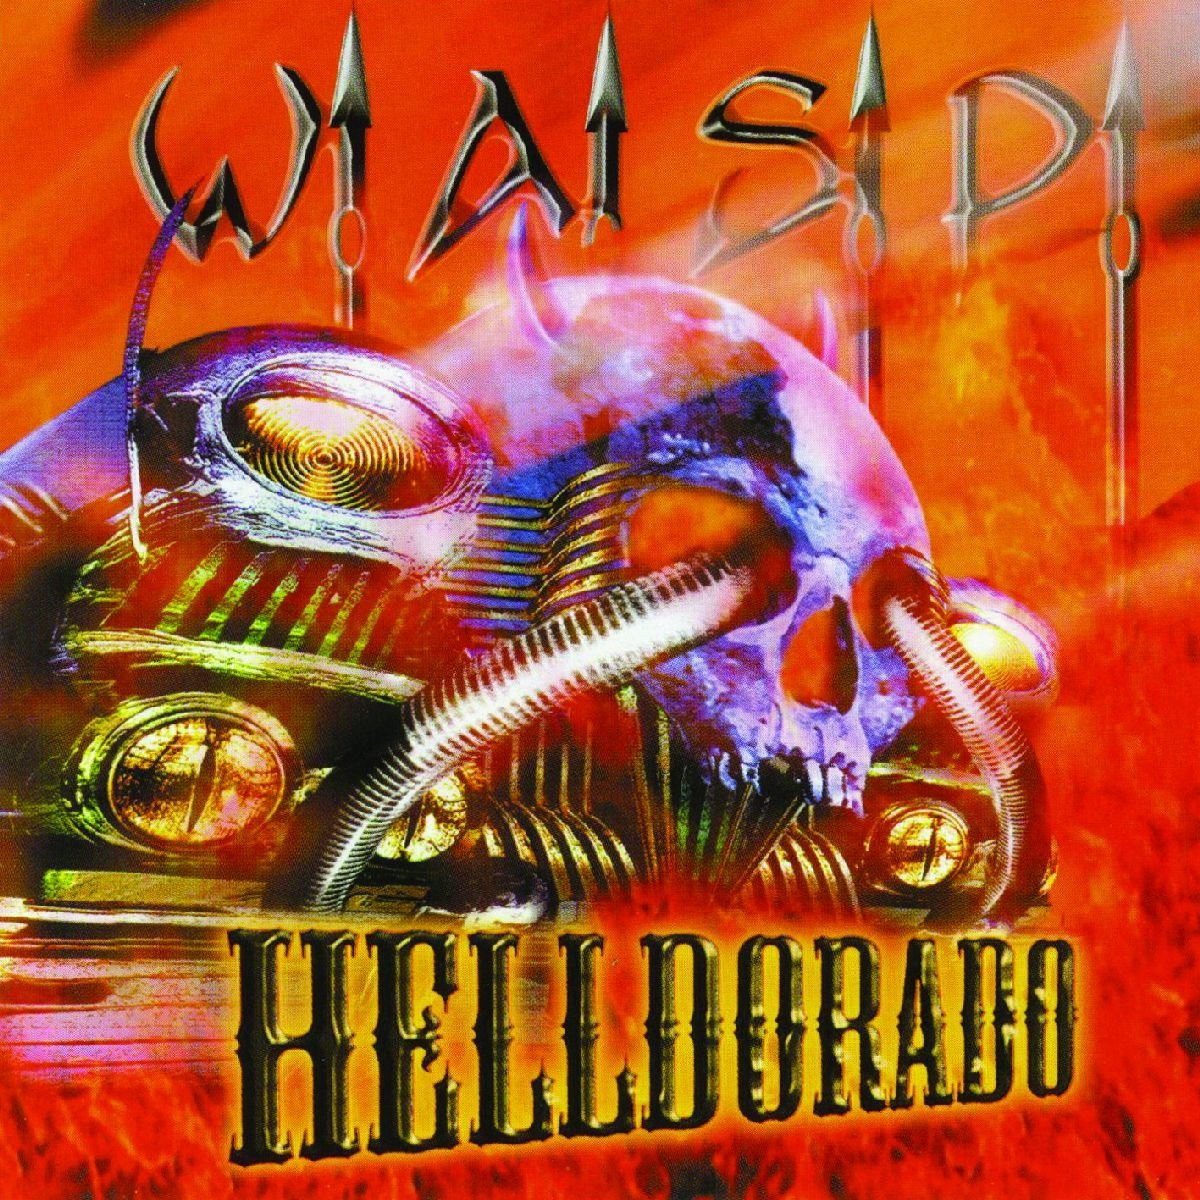 Wasp - Helldorado-Orange Vinyl - Amazon.com Music